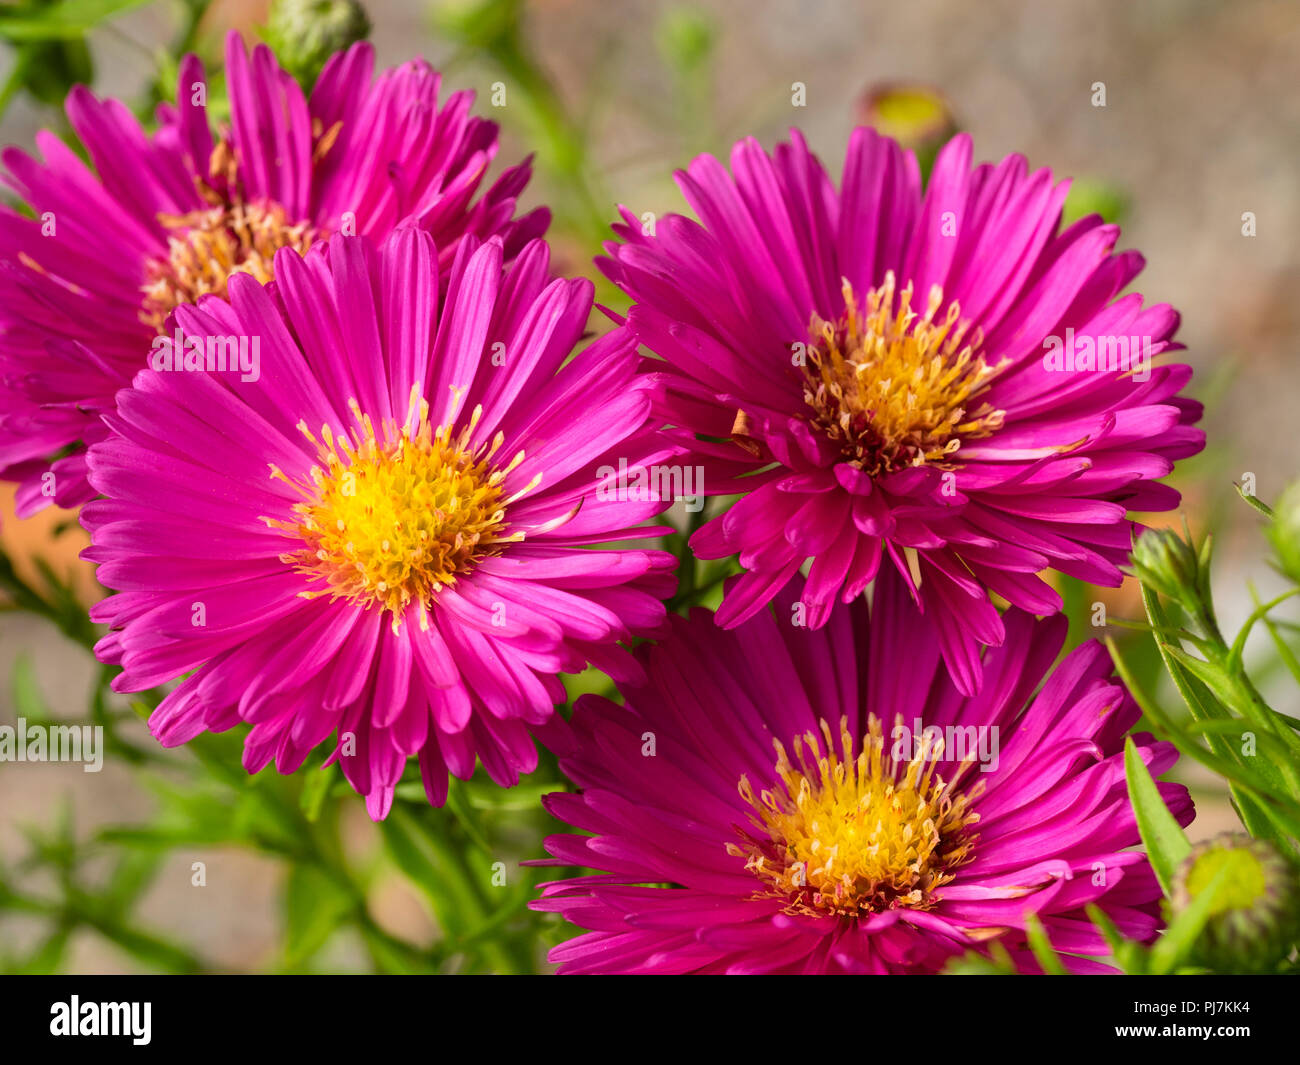 Bright pink, yellow centred flowers of the Autumn blooming Michaelmas daisy, Aster Autumn Jewels 'Granat' - Stock Image